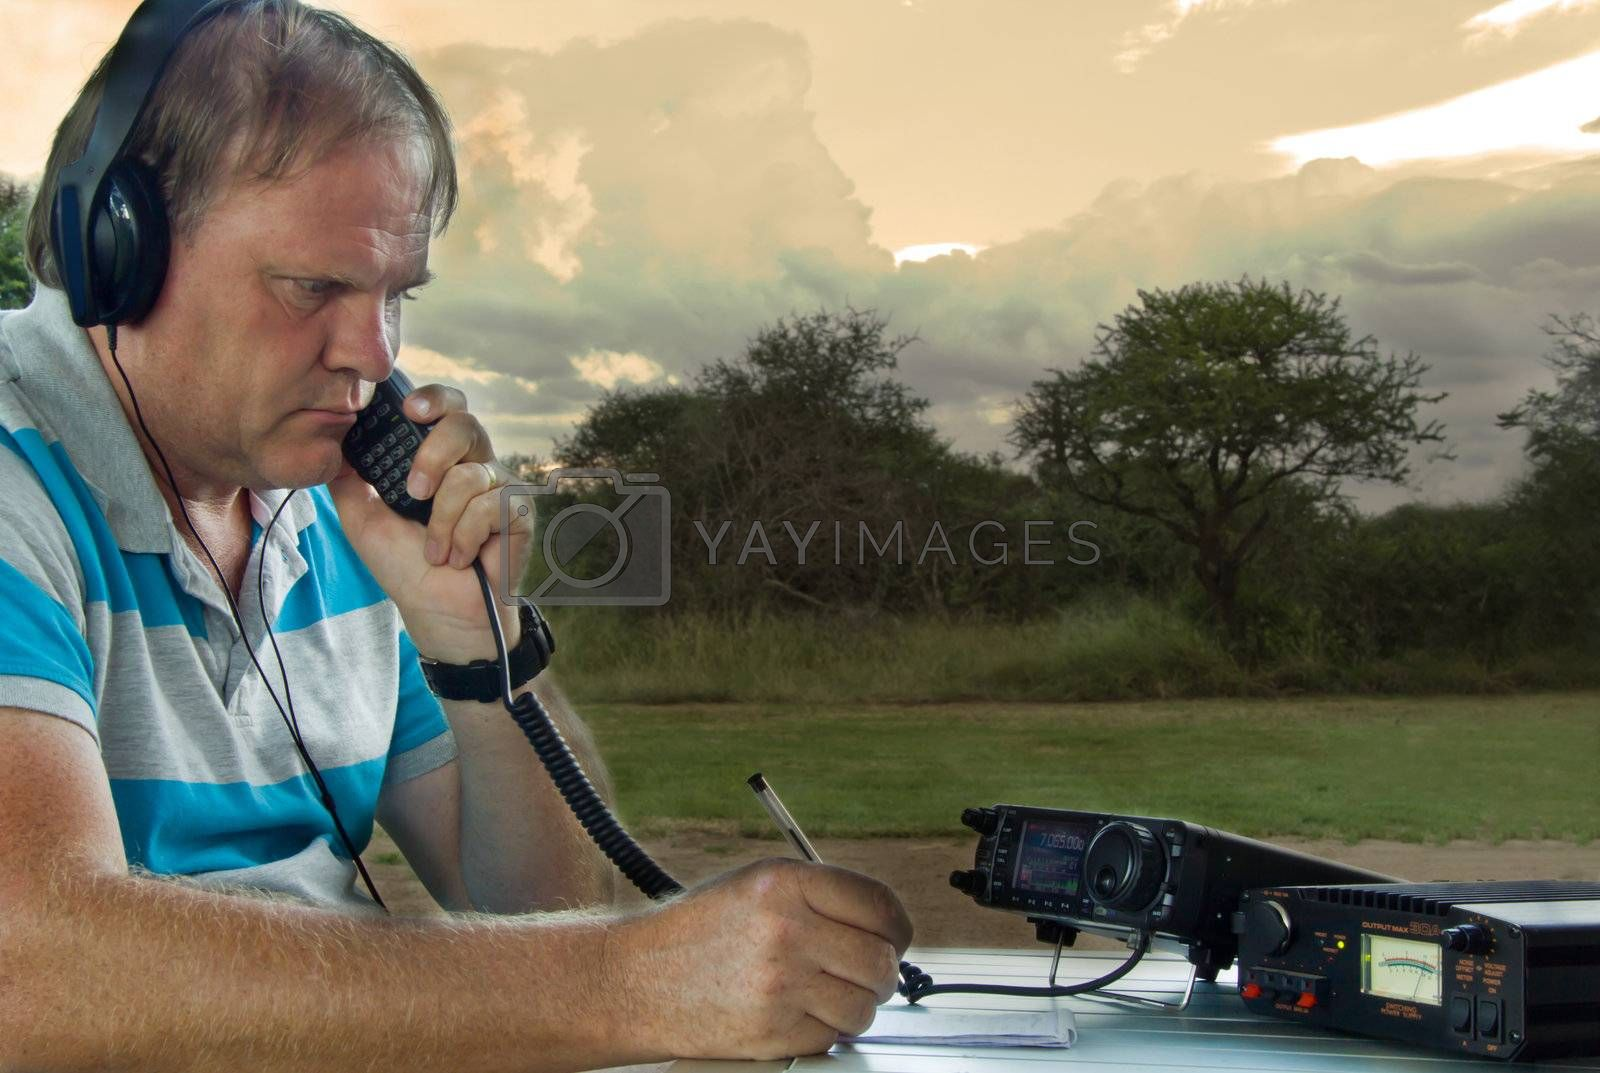 Amateur radio(Ham radio) operator communication from a romote game lodge in the Bushvelt ,South Africa